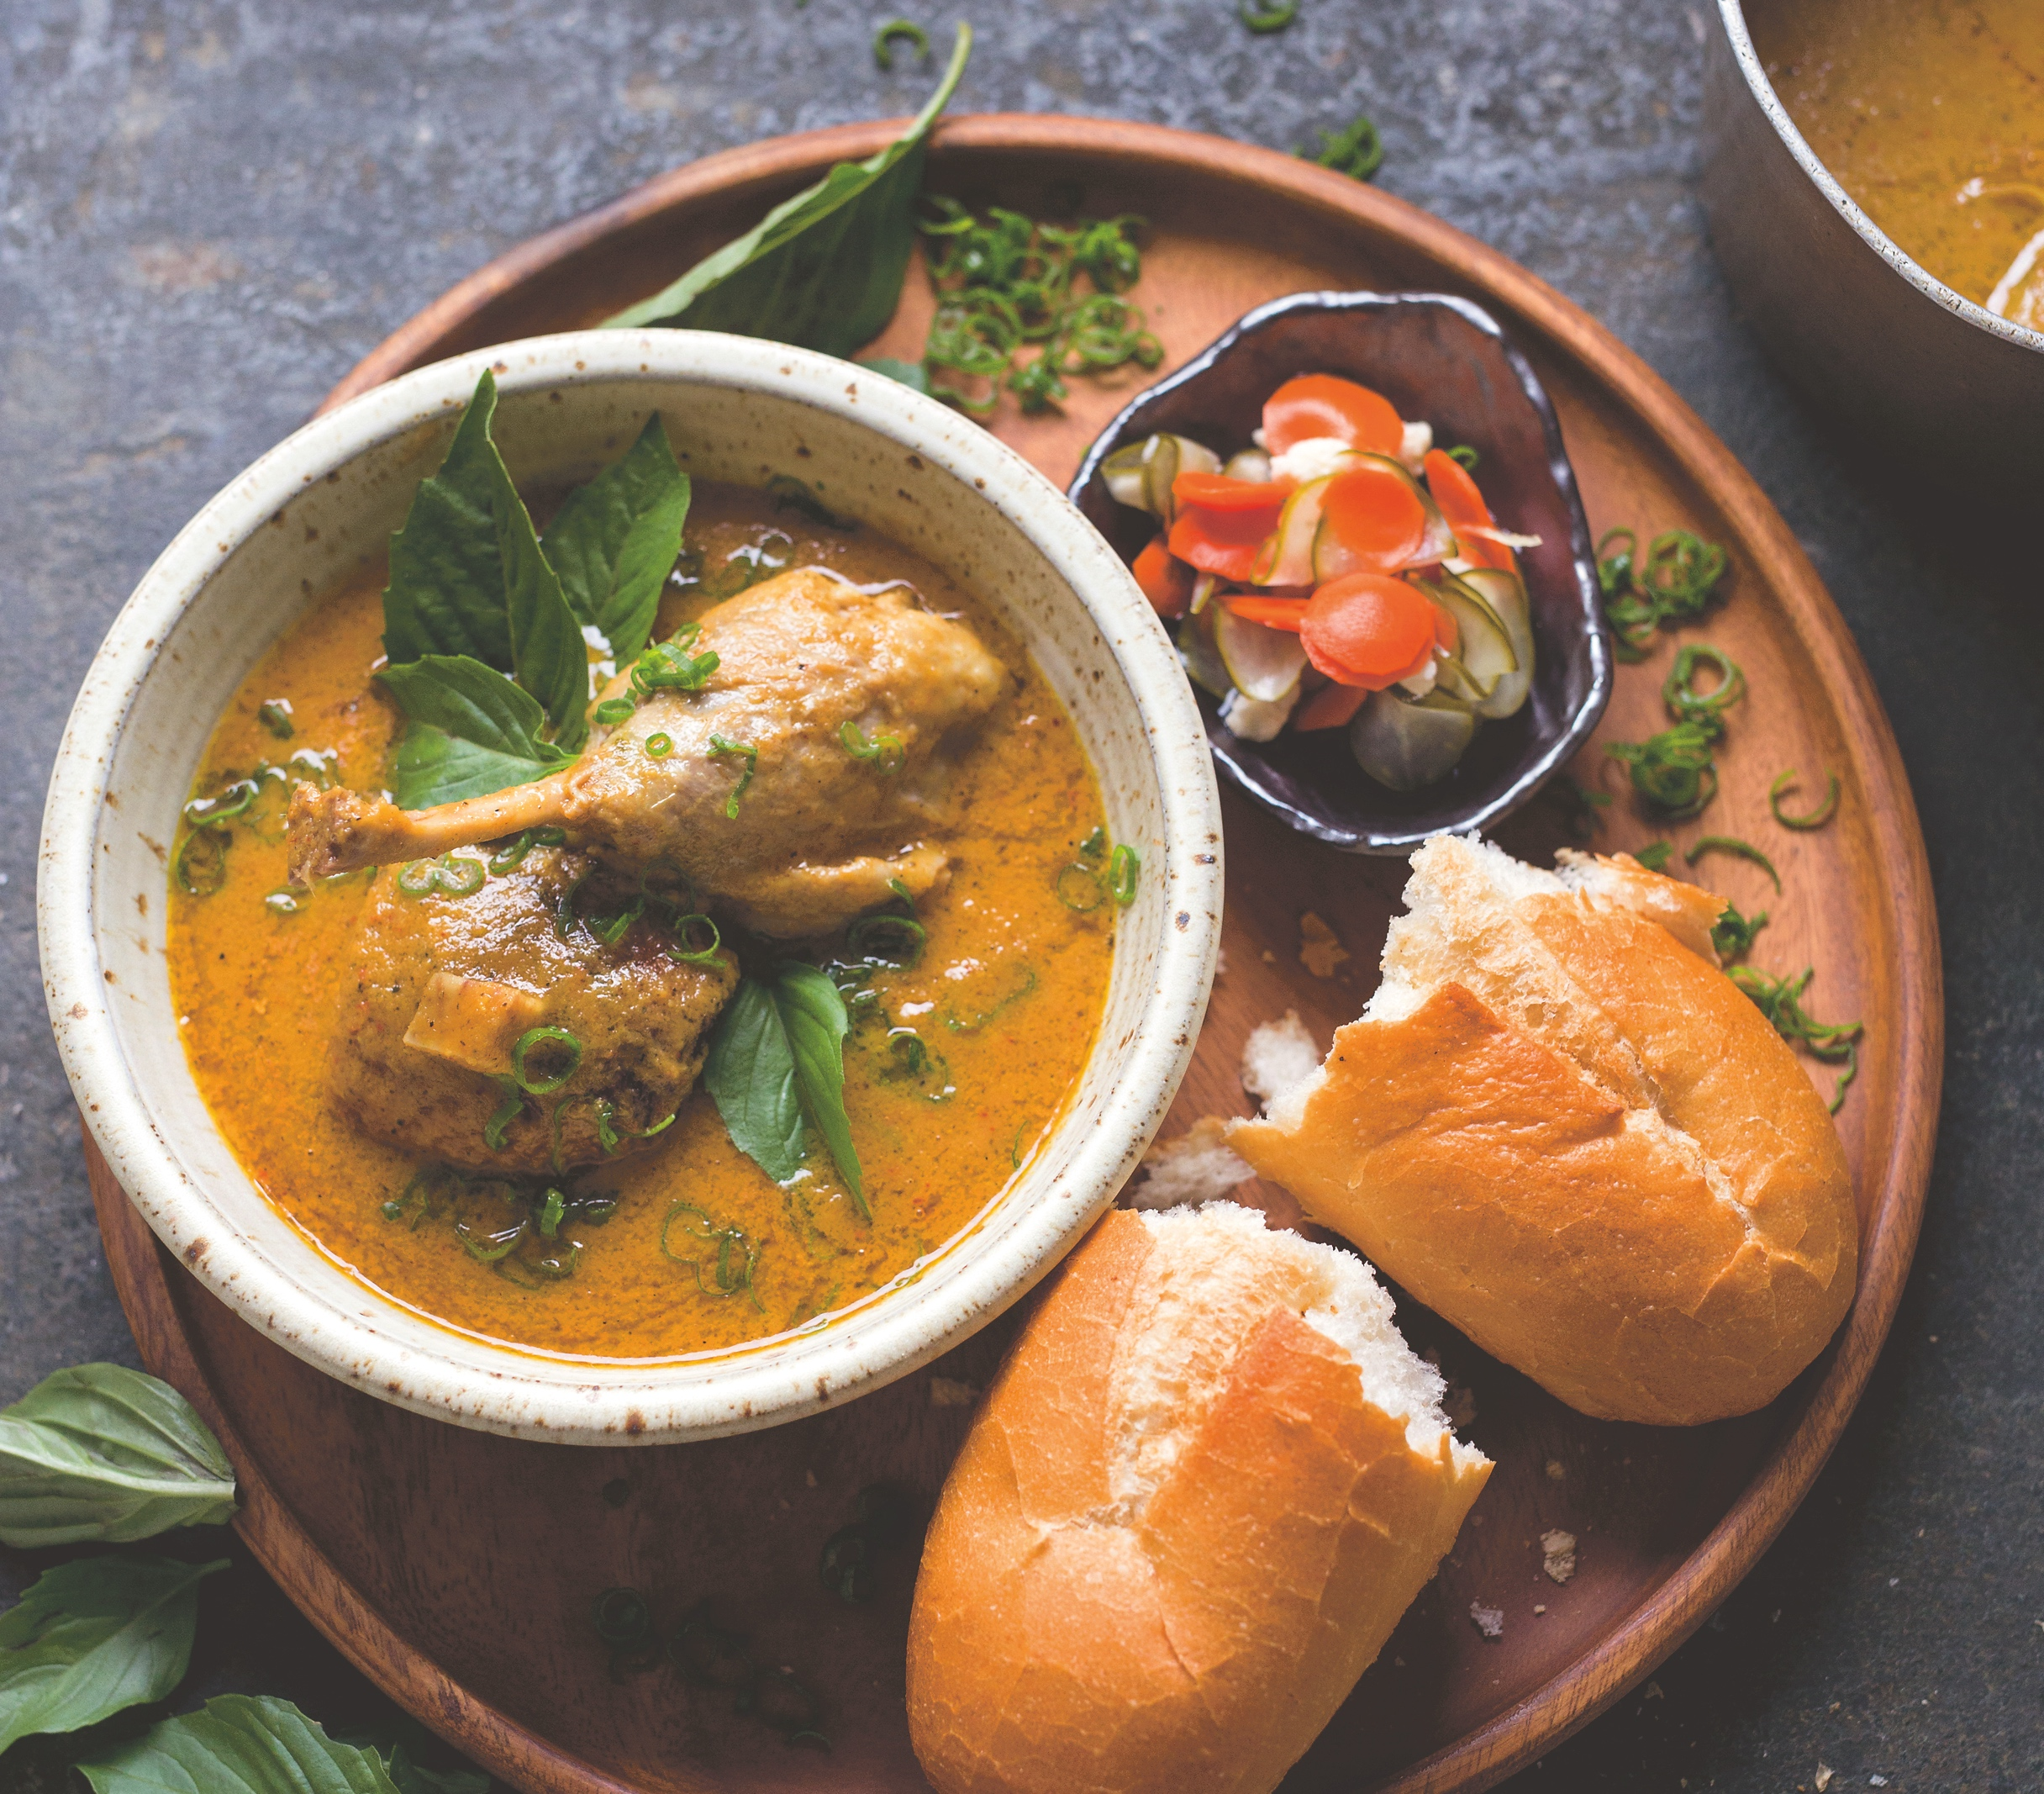 Serve This Vietnamese Duck Curry With Crusty Bread - Food Republic